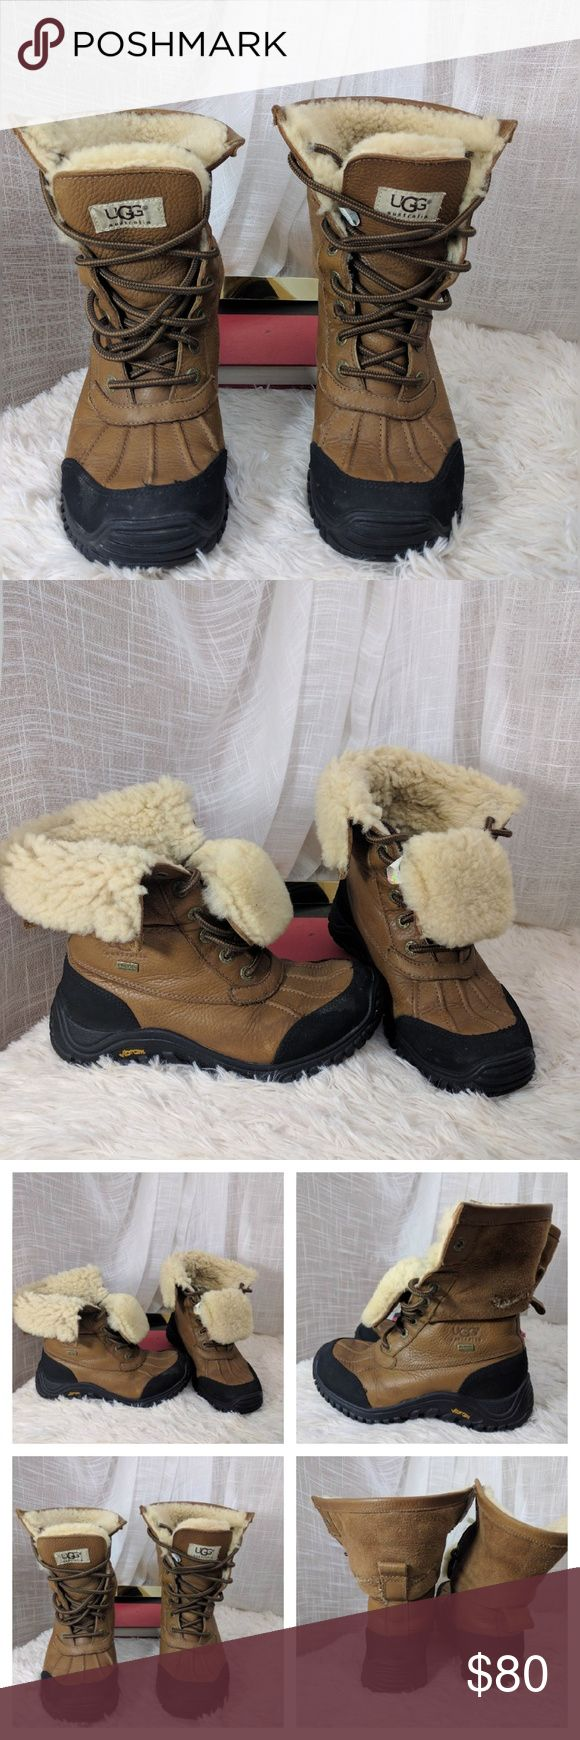 UGG Adirondack Boot II Women's Snow Boots in Otter These had a tear in the back of one of the boots shown I had it professionally repaired, but the stitching is visible.  Otherwise very low use boot as seen in the pic of the sole. UGG Shoes Winter & Rain Boots